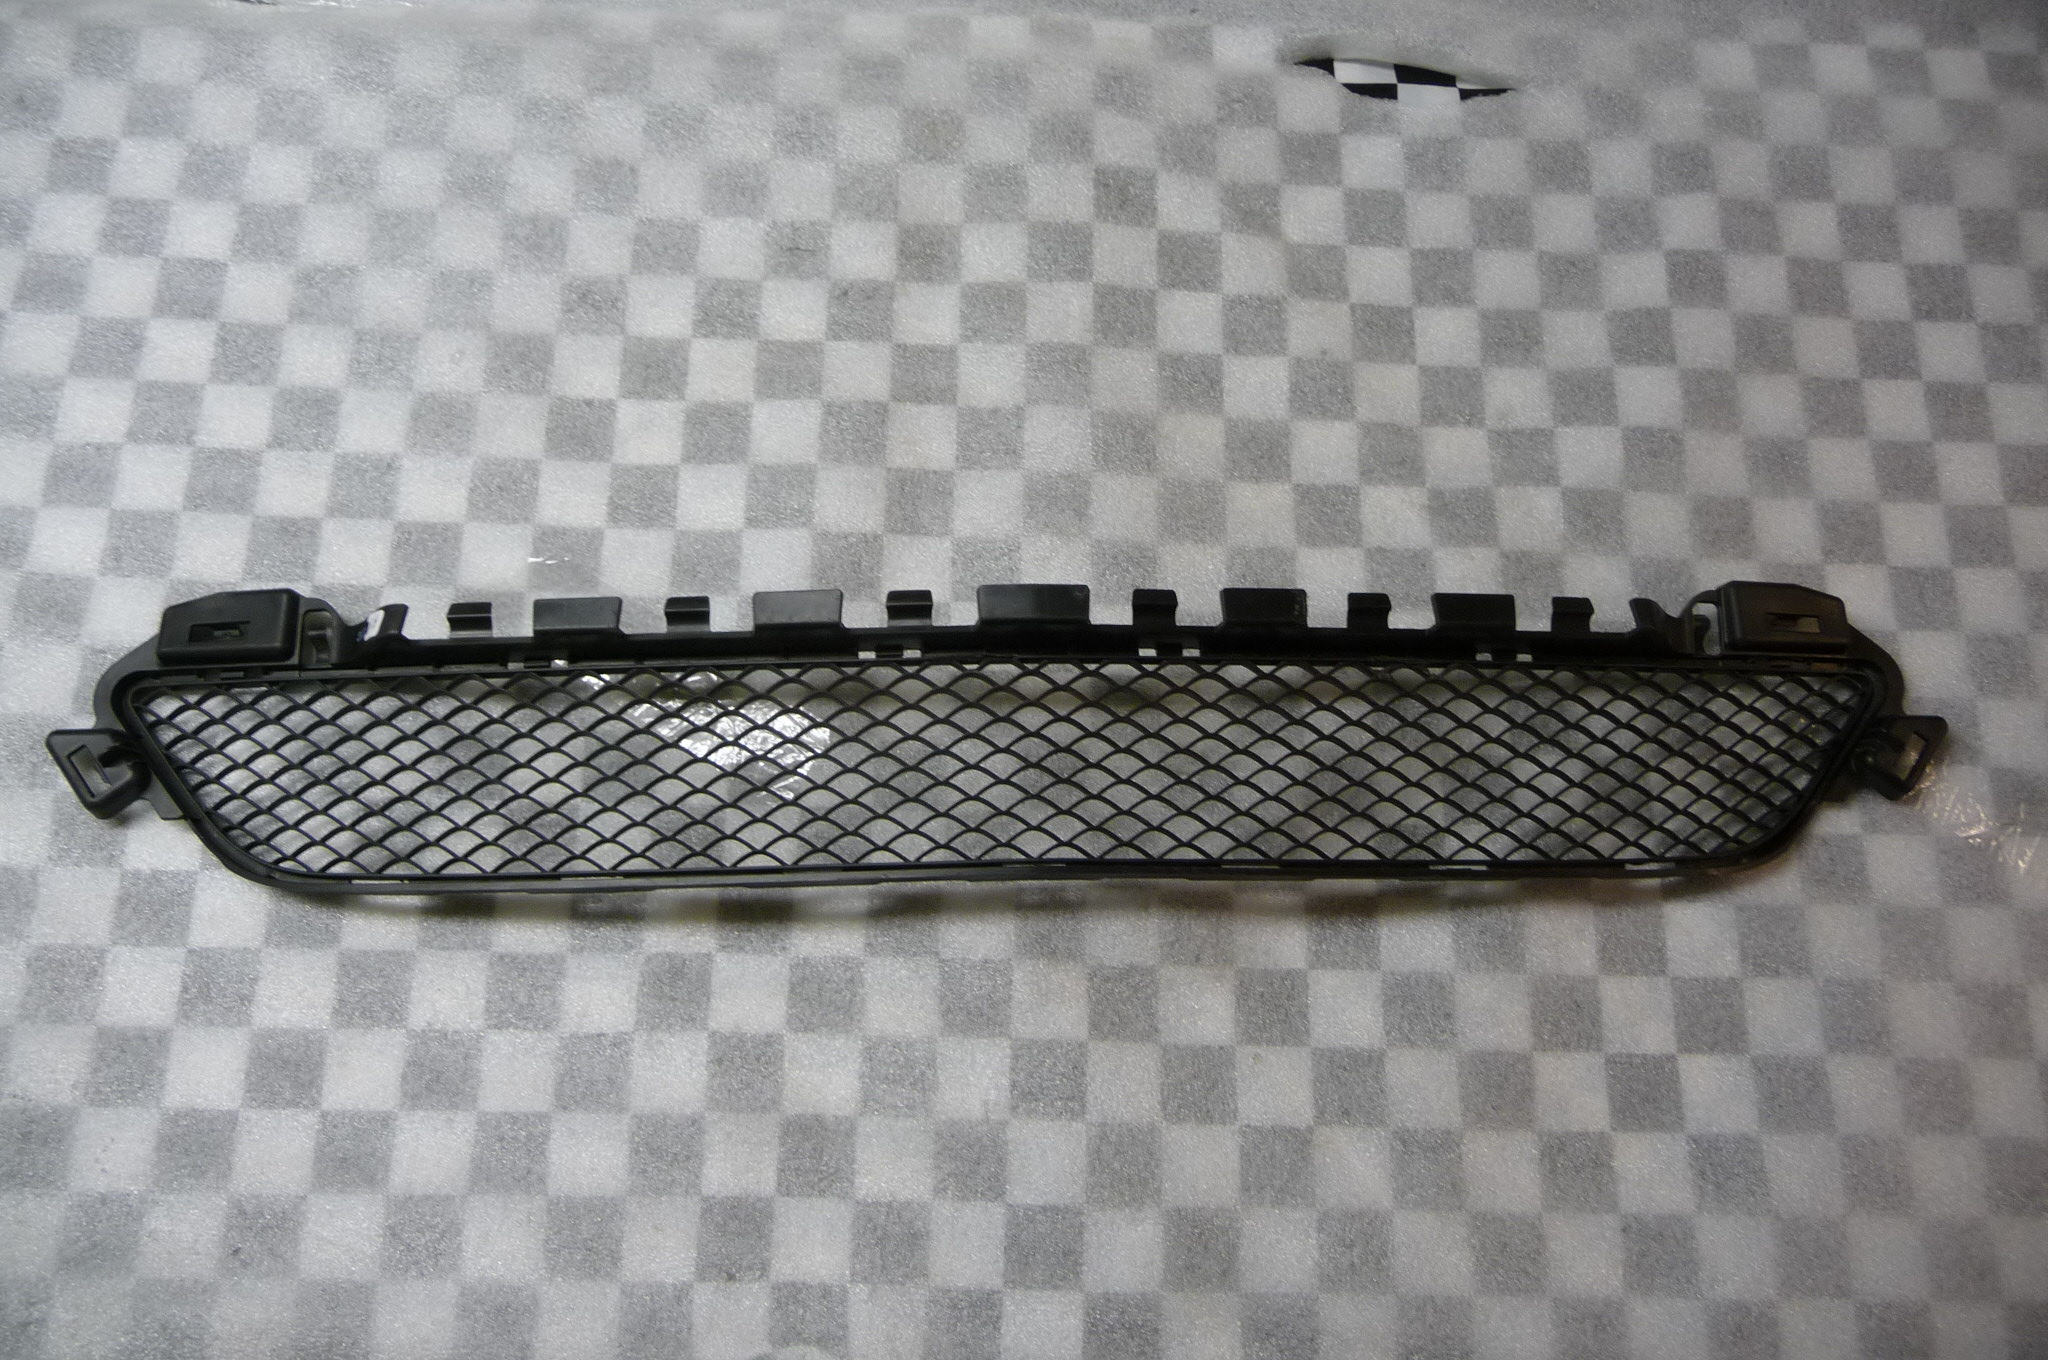 Mercedes Benz W205 Front Lower Bumper Area Grille Cover A2058850423 OEM